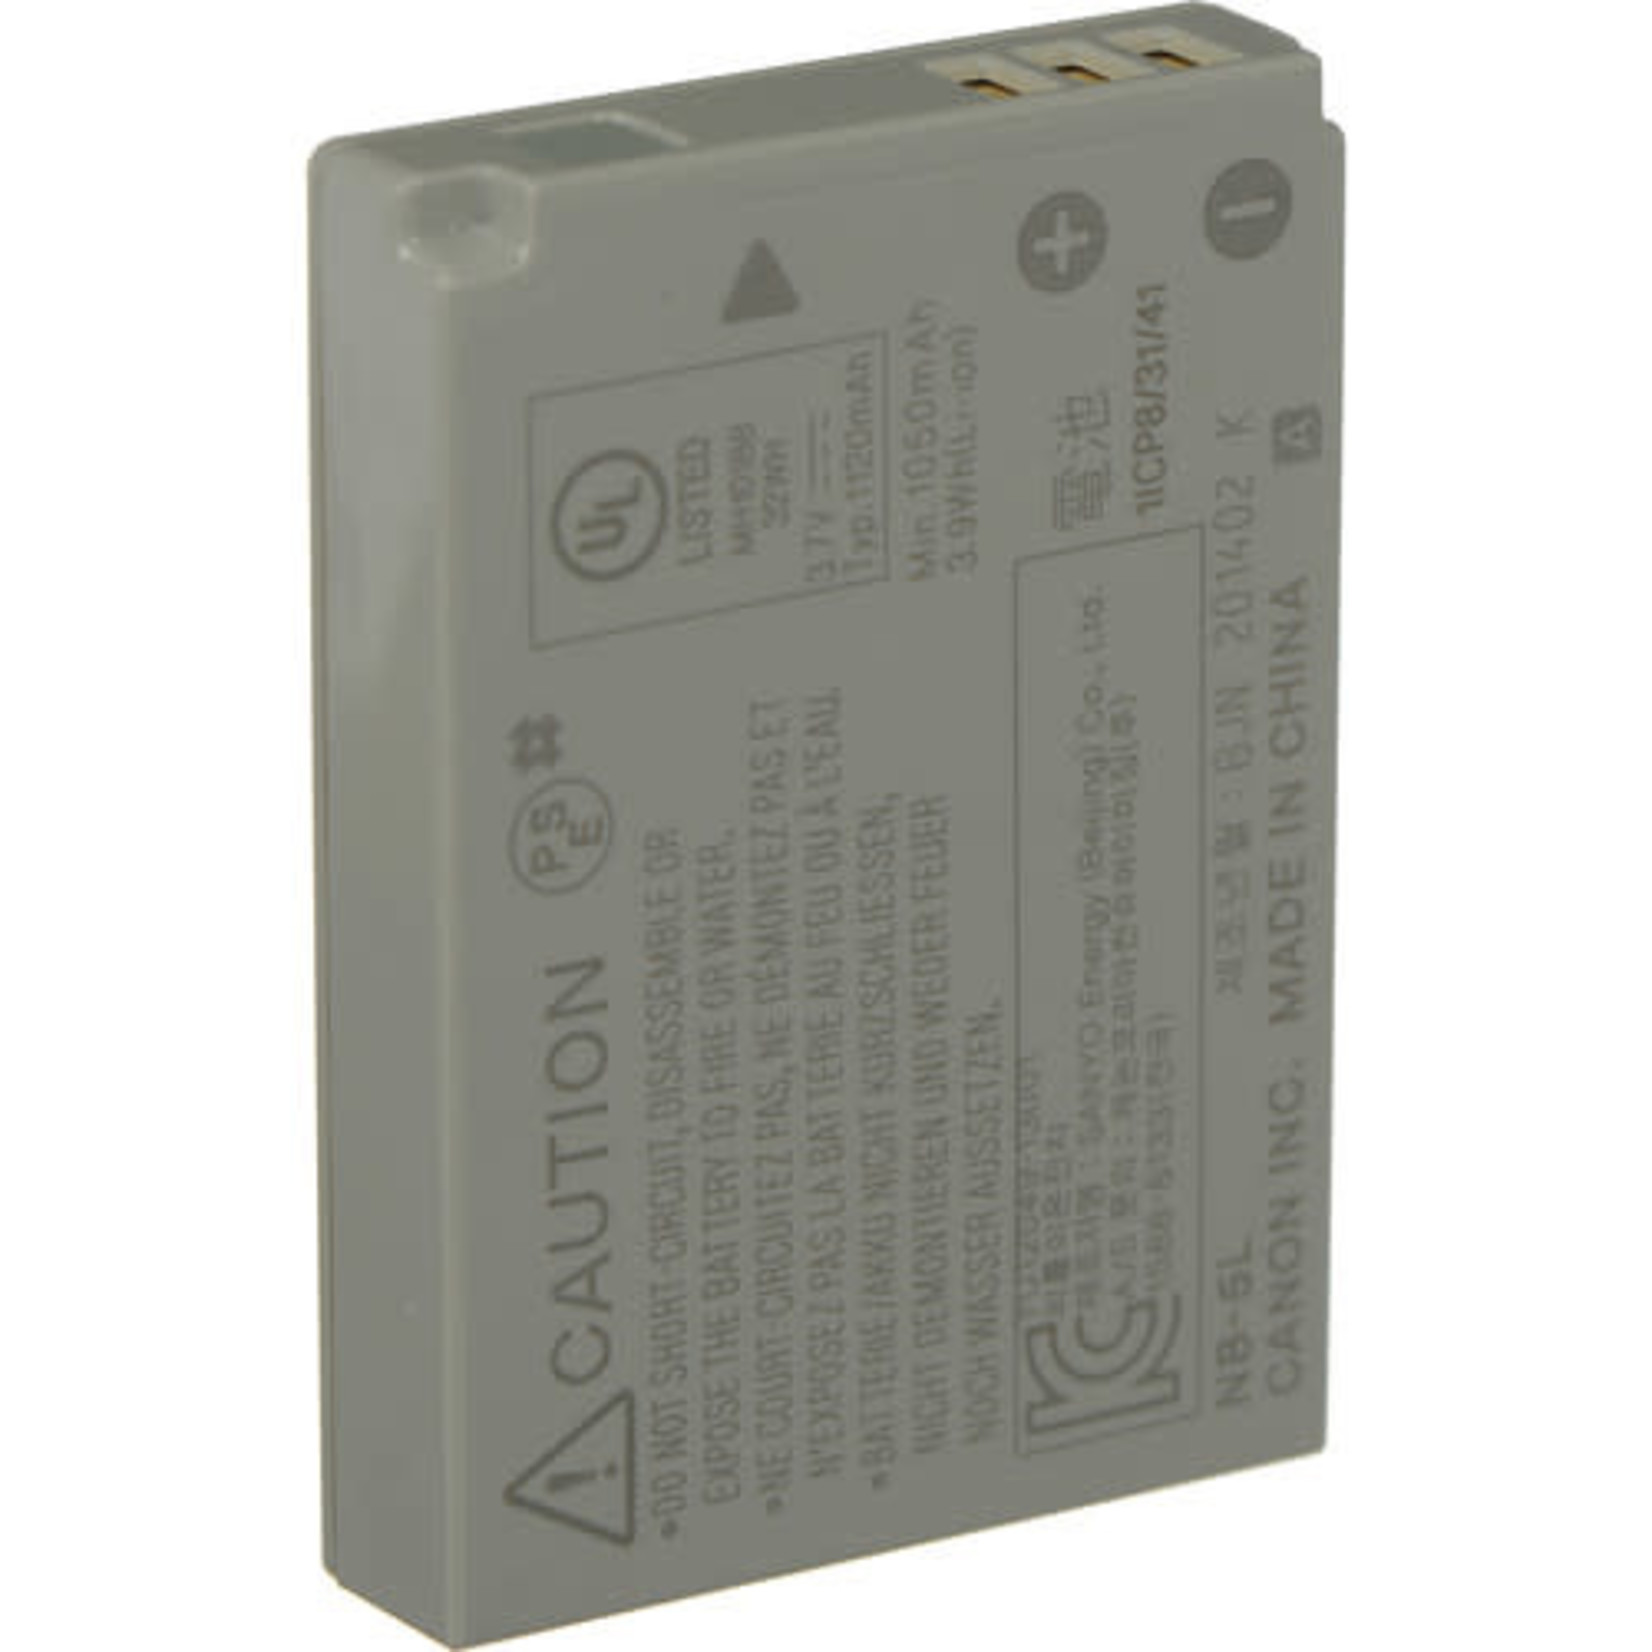 Canon Canon NB-5L Lithium-Ion Battery Pack (3.7v, 1120mAh)